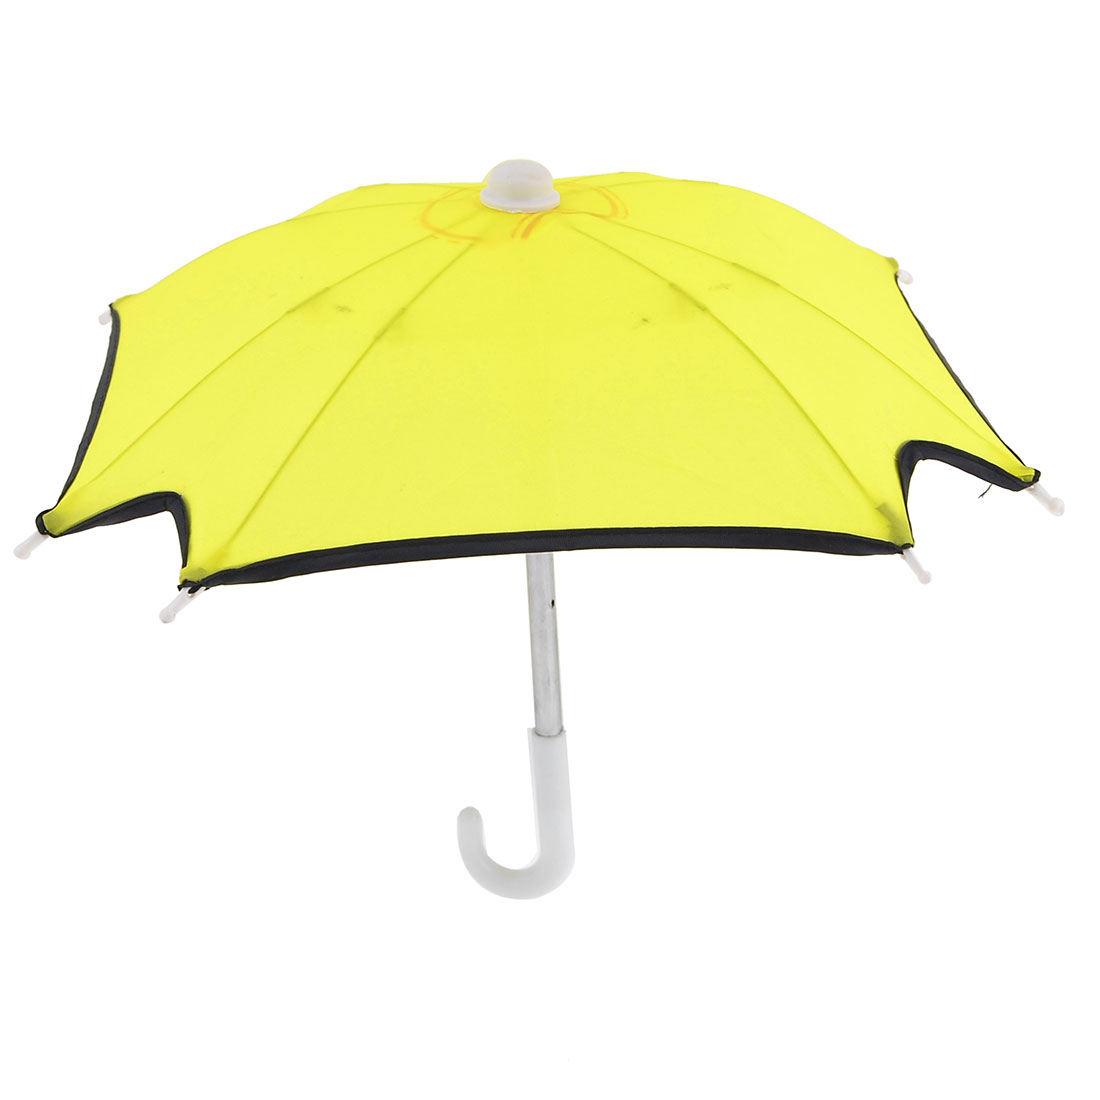 Mini Yellow Nylon Cap White Plastic Foldable Children Umbrella Toy